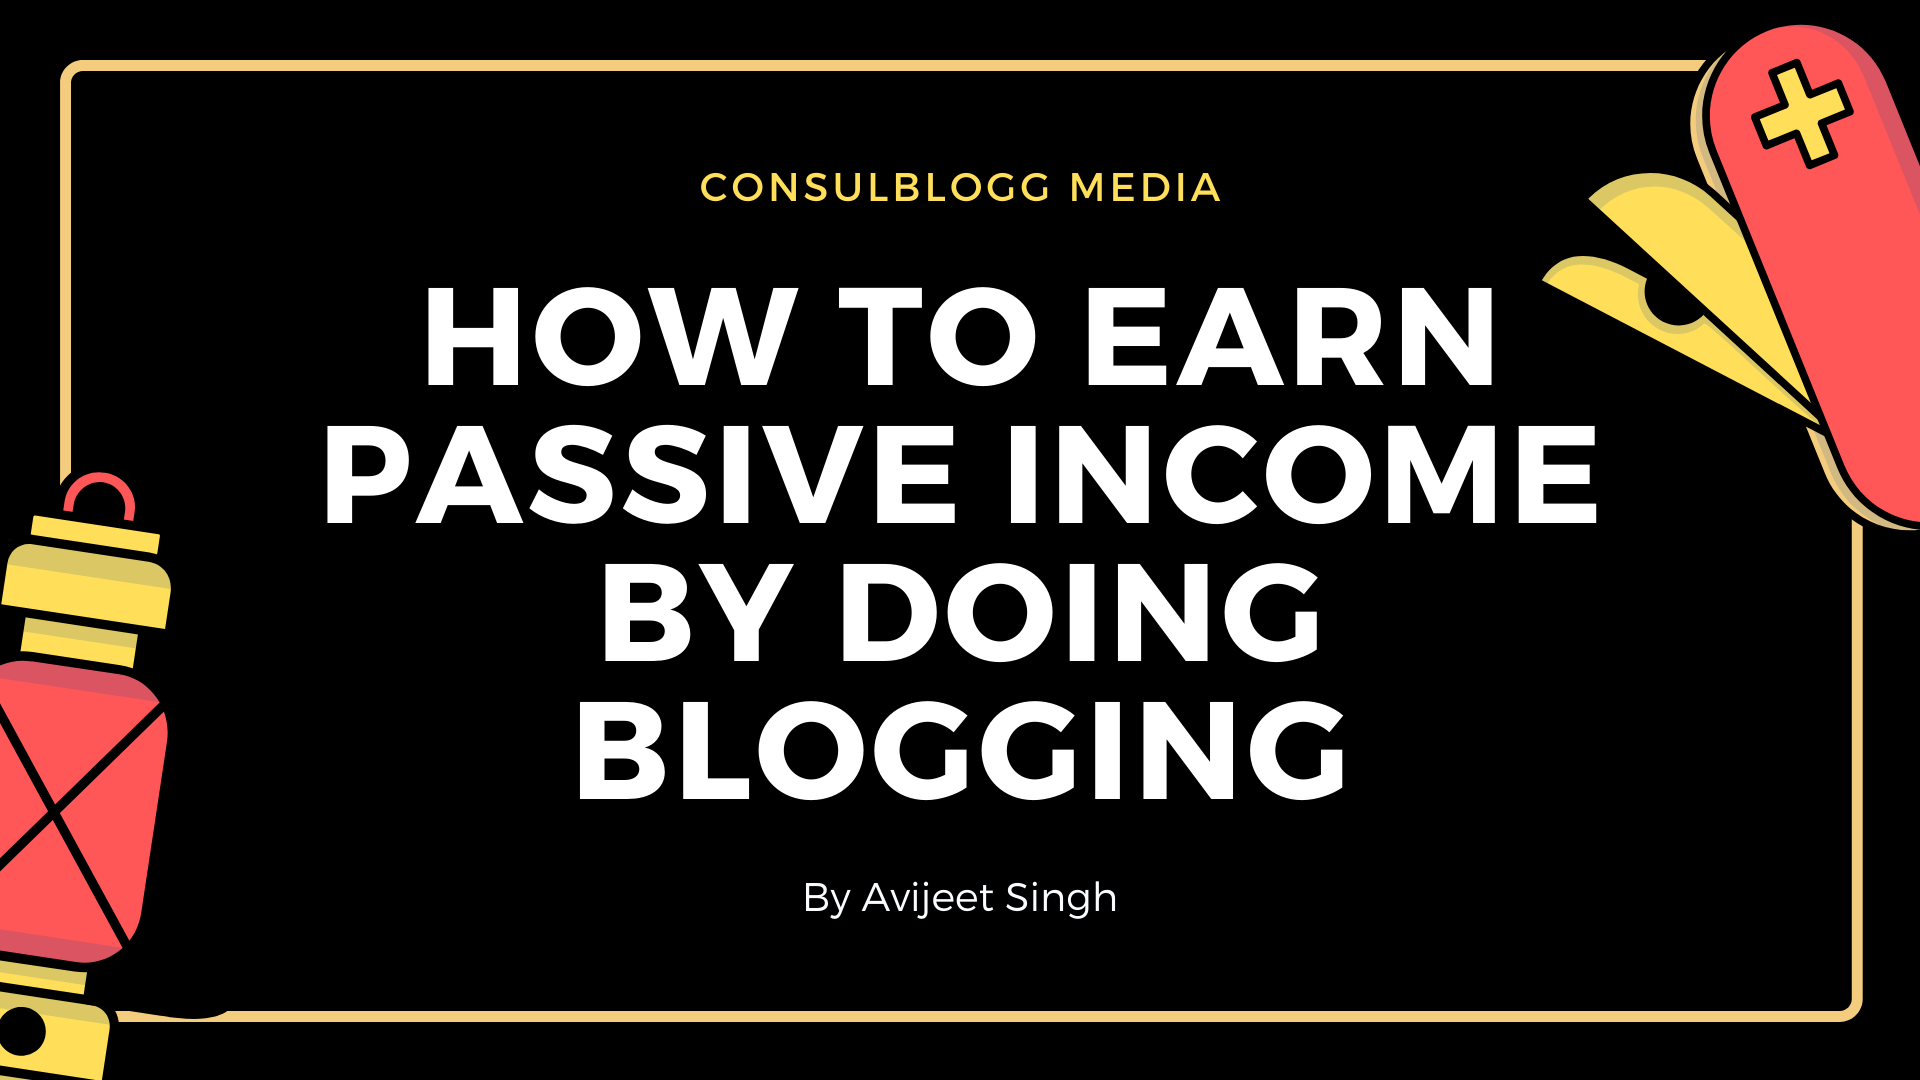 How to earn passive income by doing blogging